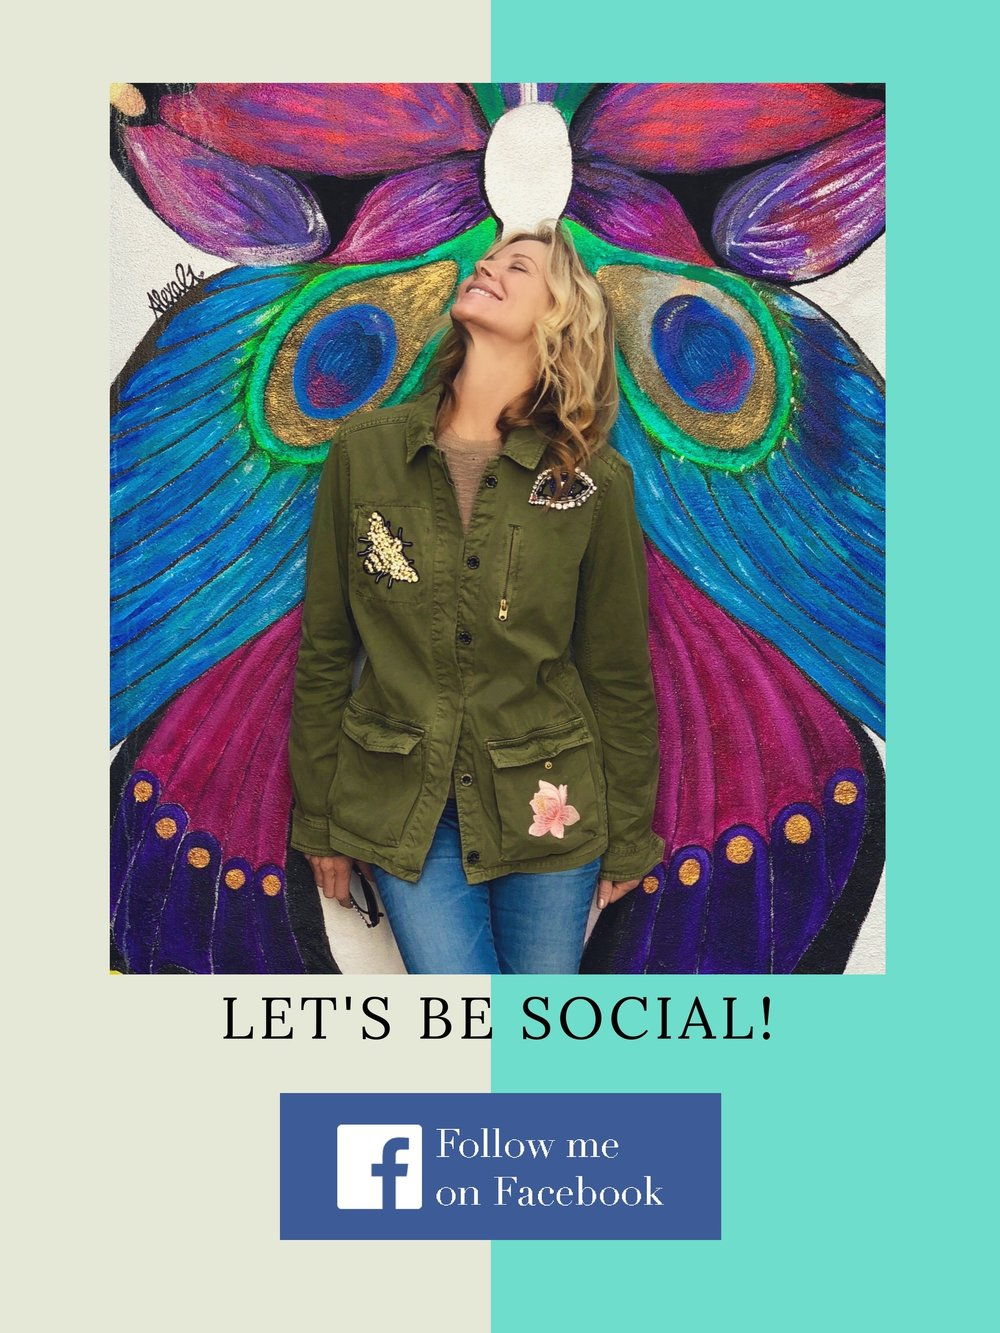 Join Me SocialButterflies! Let's fly and have some fun... Jacket created  @Socialbutterfliesla